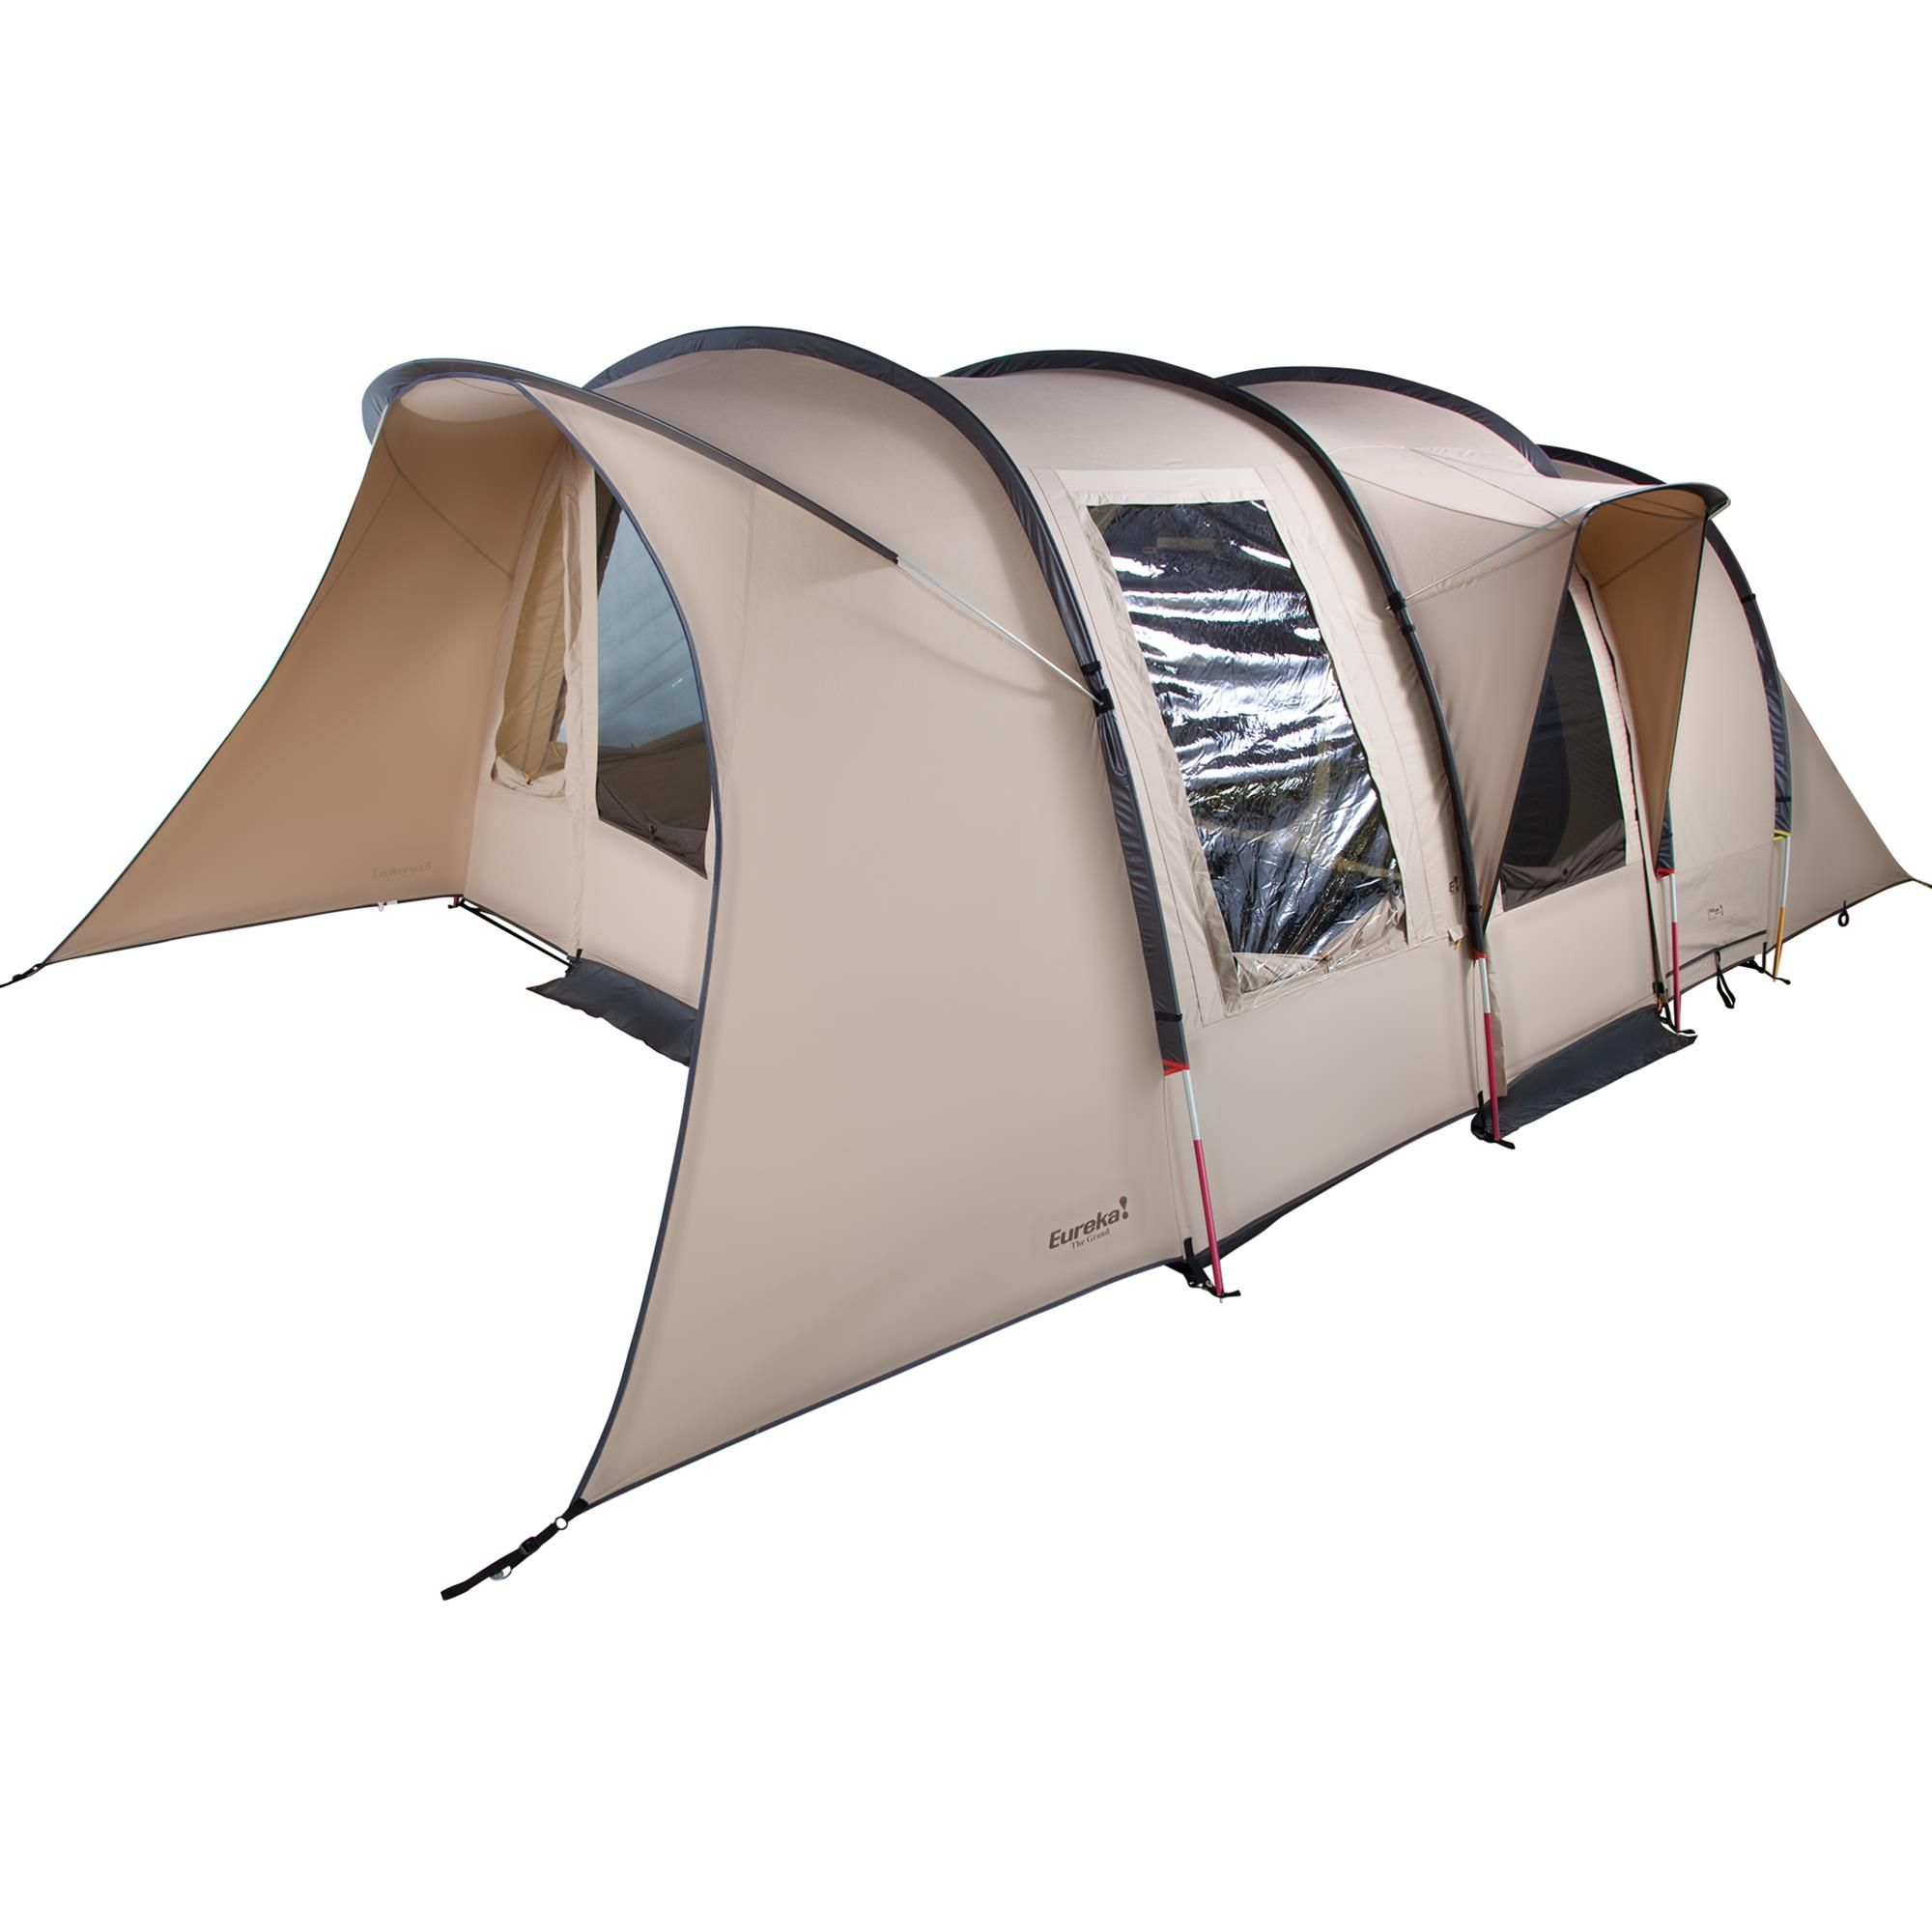 Doorout Angebote Eureka The Grand Btc Rs Familienzelt Sand Category Zelte Familienzelte Item Number 10000252913 Qu Tent Family Tent Camping Family Tent